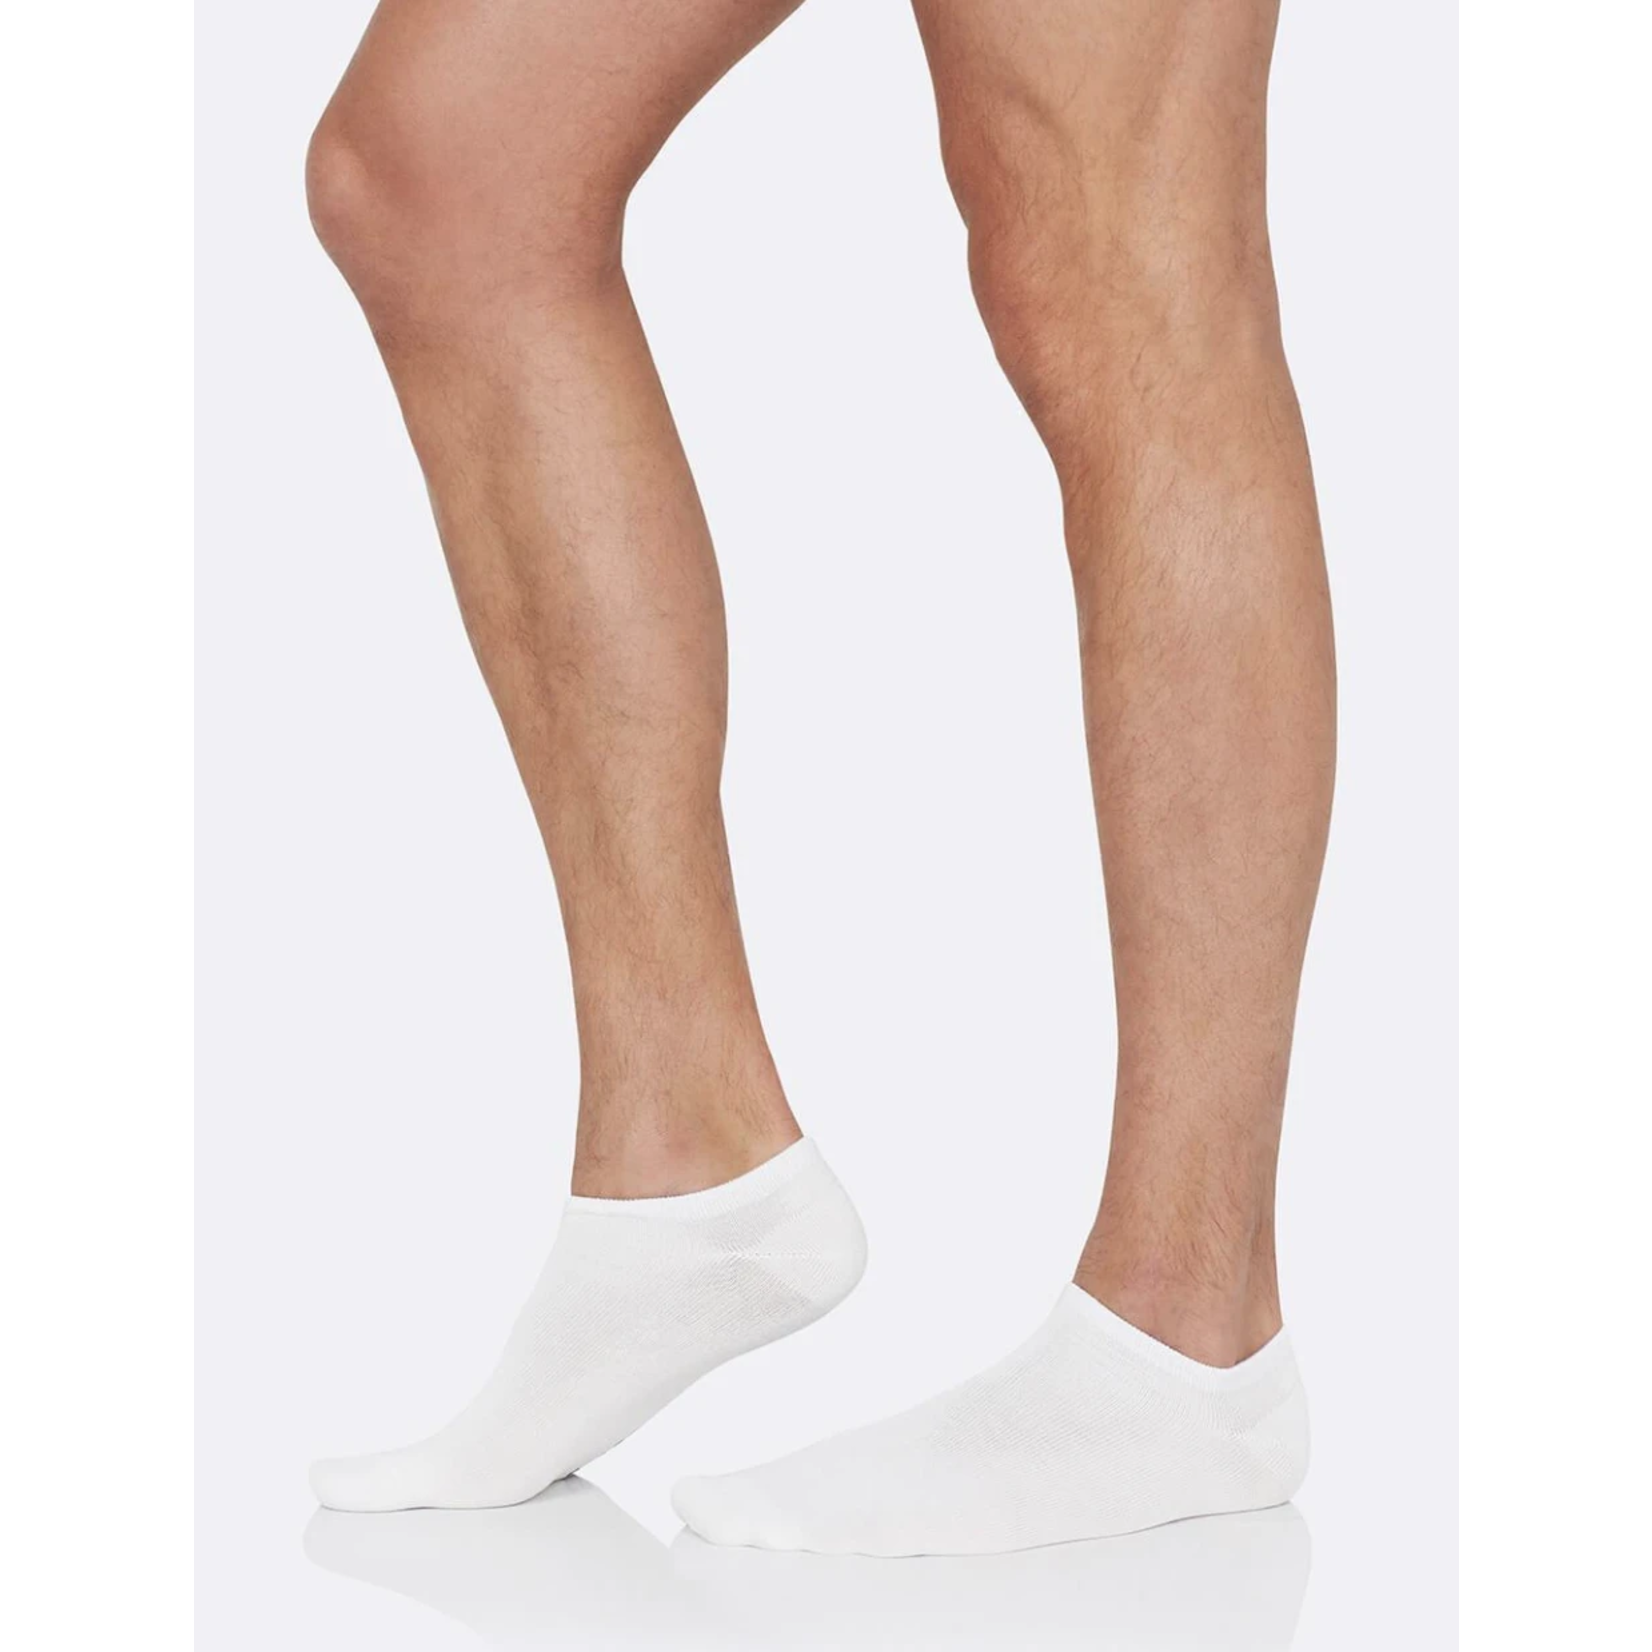 Boody Boody Men's Low Cut Sneaker Socks